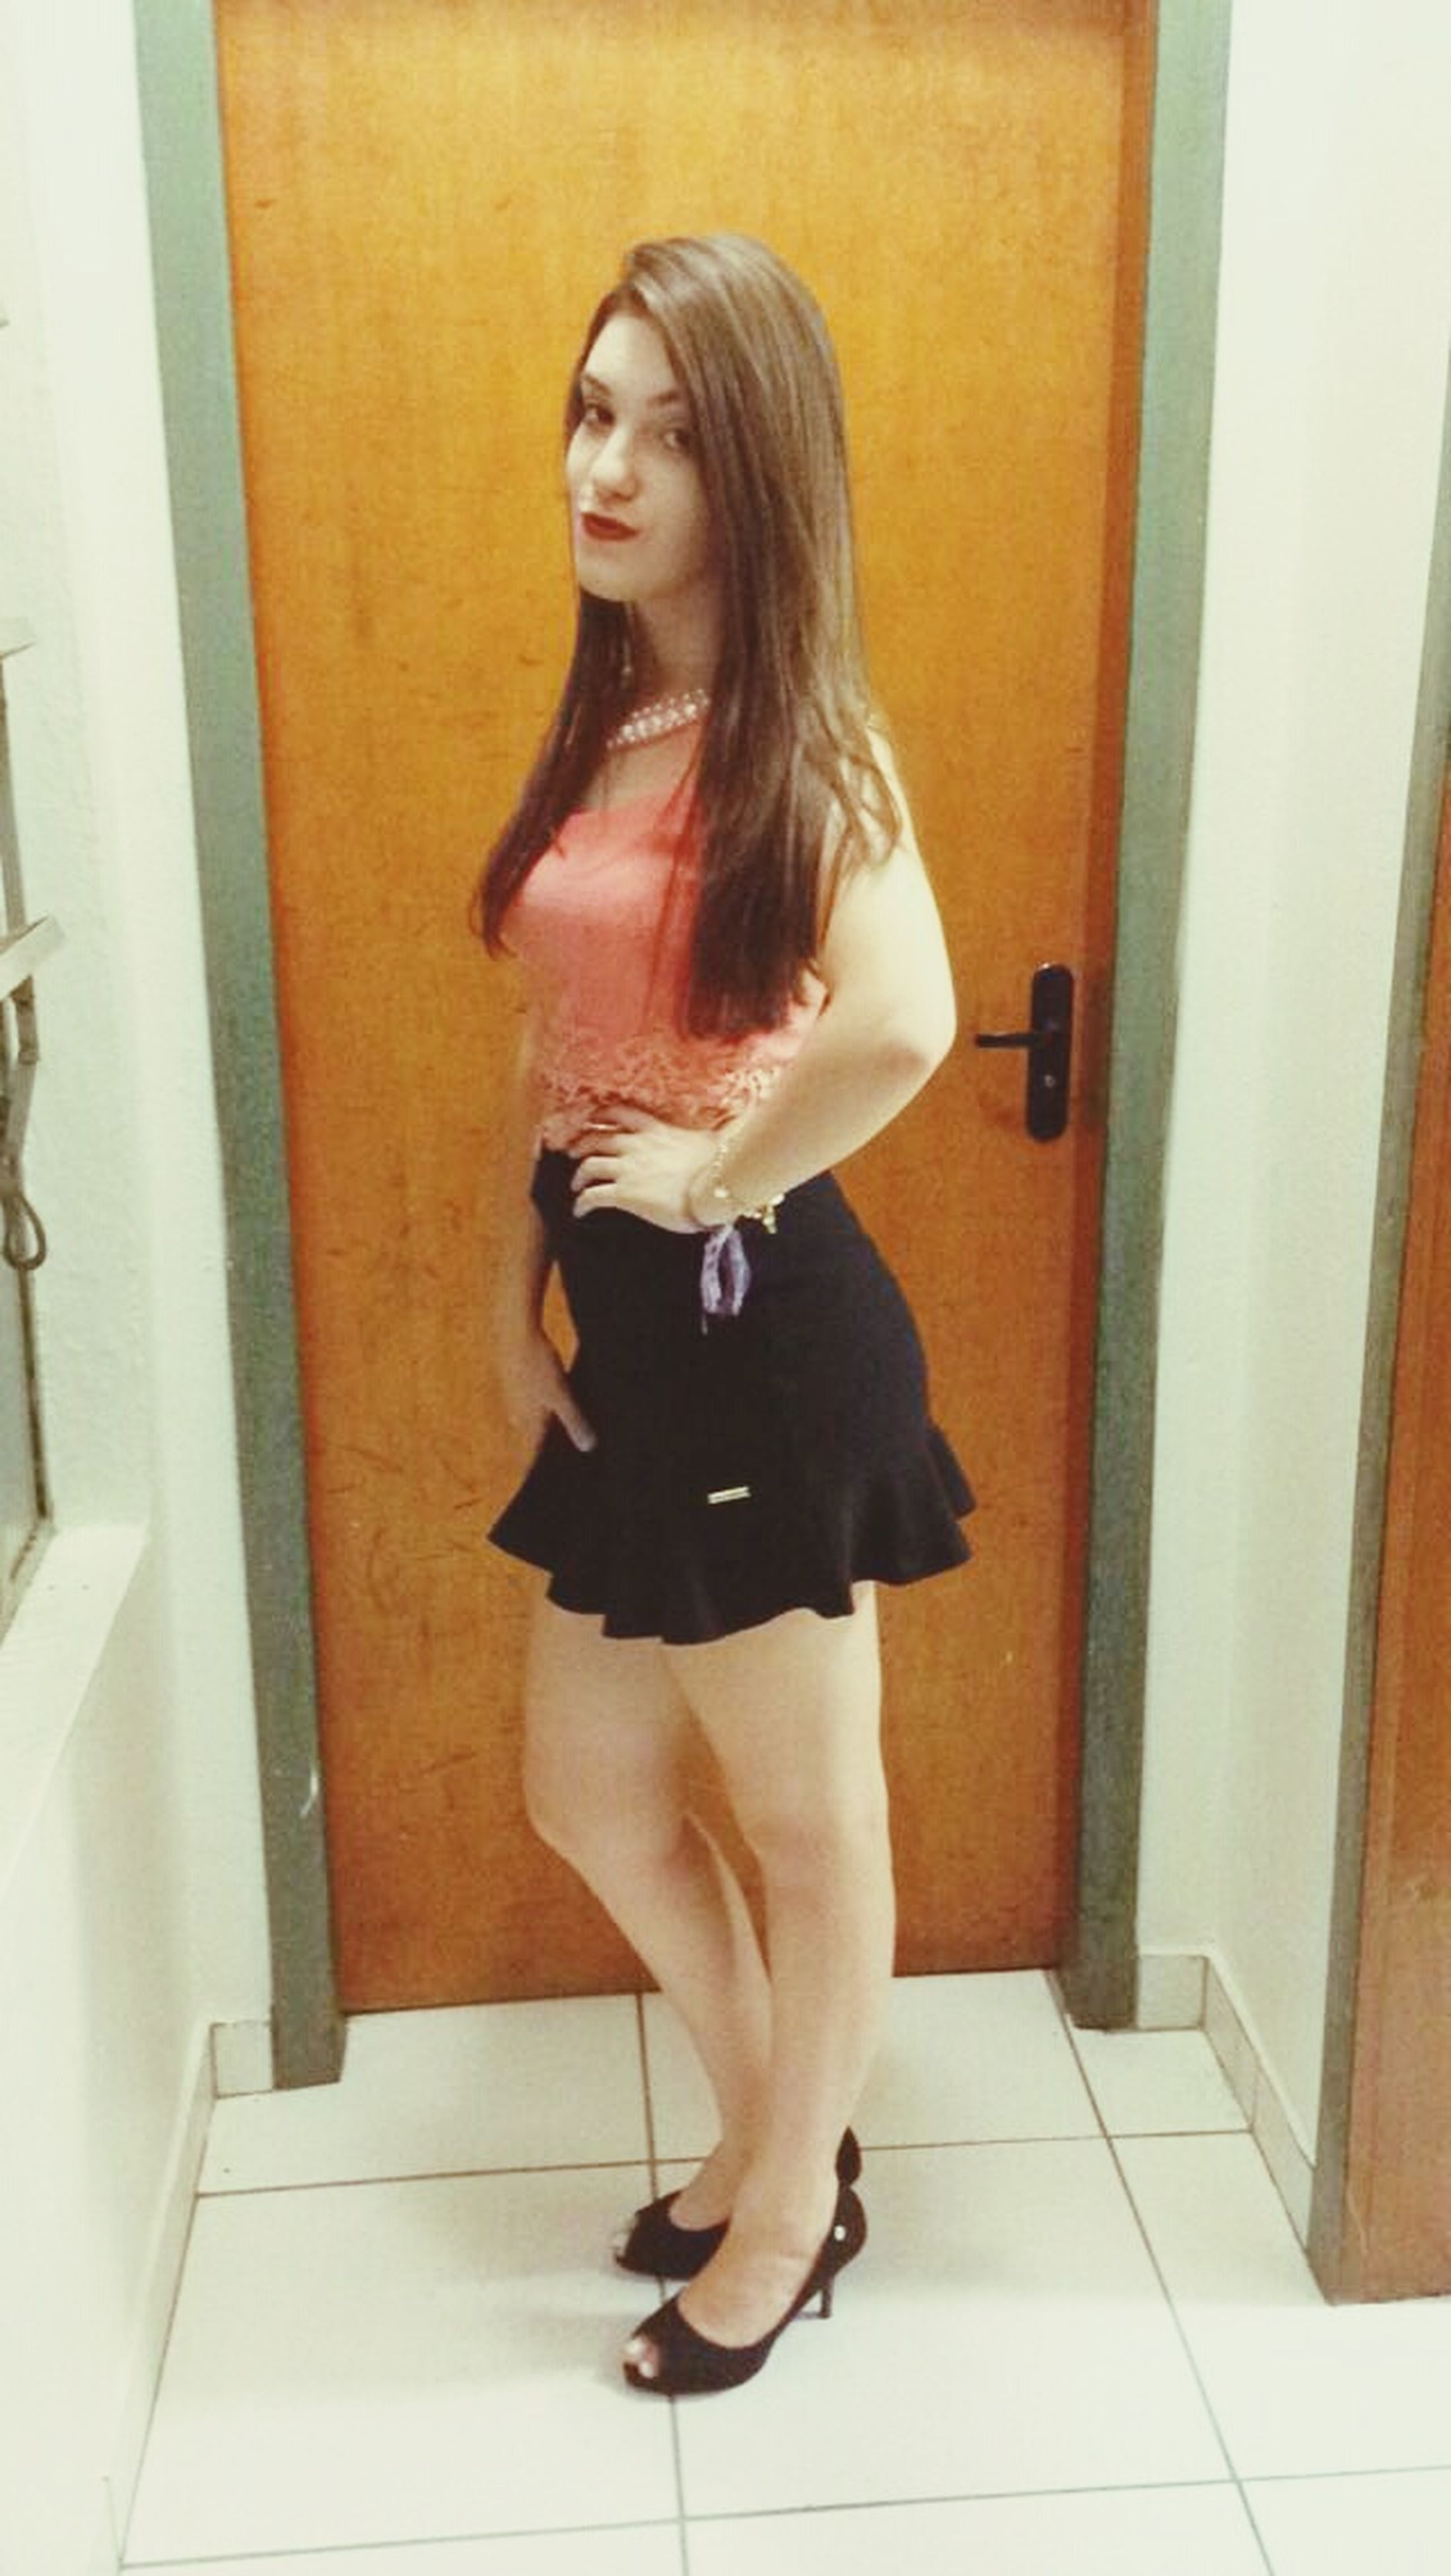 indoors, full length, young adult, lifestyles, young women, home interior, person, casual clothing, leisure activity, door, long hair, standing, domestic room, front view, three quarter length, looking at camera, sitting